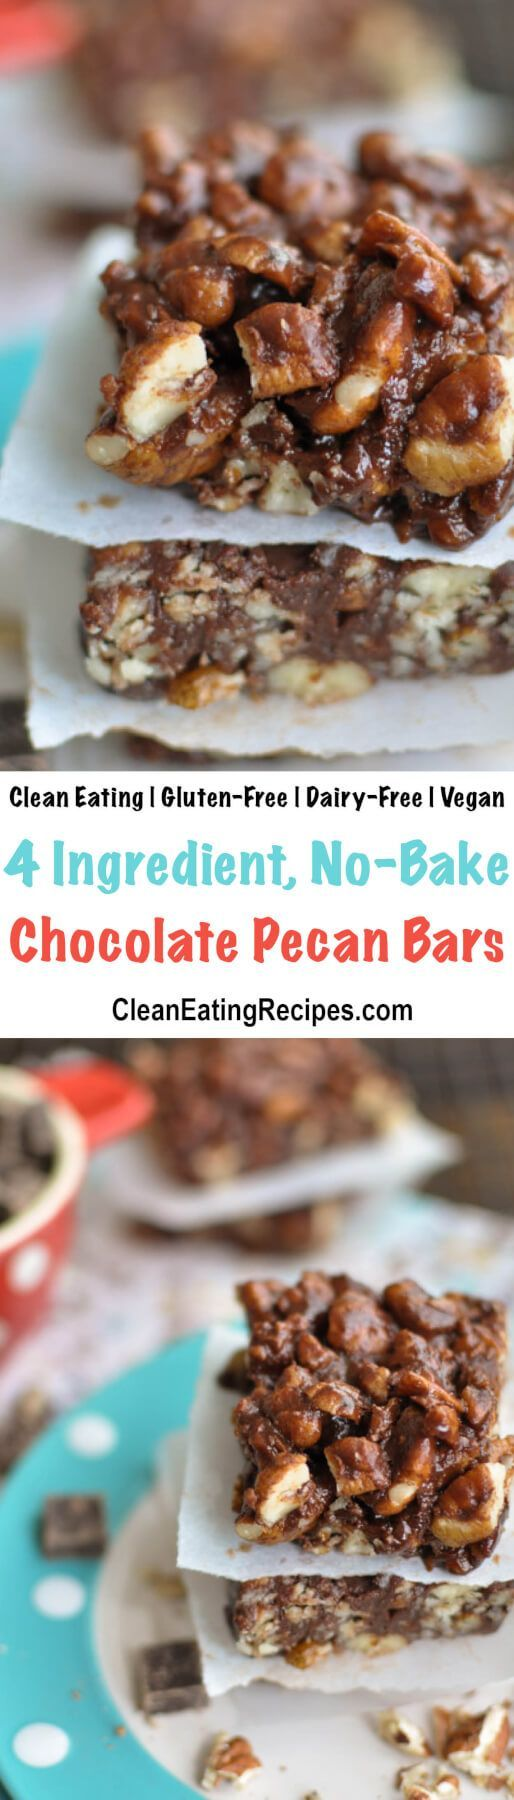 These dark chocolate pecan bars are a no-bake healthy indulgence that are super-simple to make with only 4 ingredients and they only take about 10 minutes to make from start to finish. {Clean Eating, Gluten-Free, Vegan, Dairy-Free} #cleaneating #glutenfree #vegan #dairyfree #chocolate #pecans #recipe